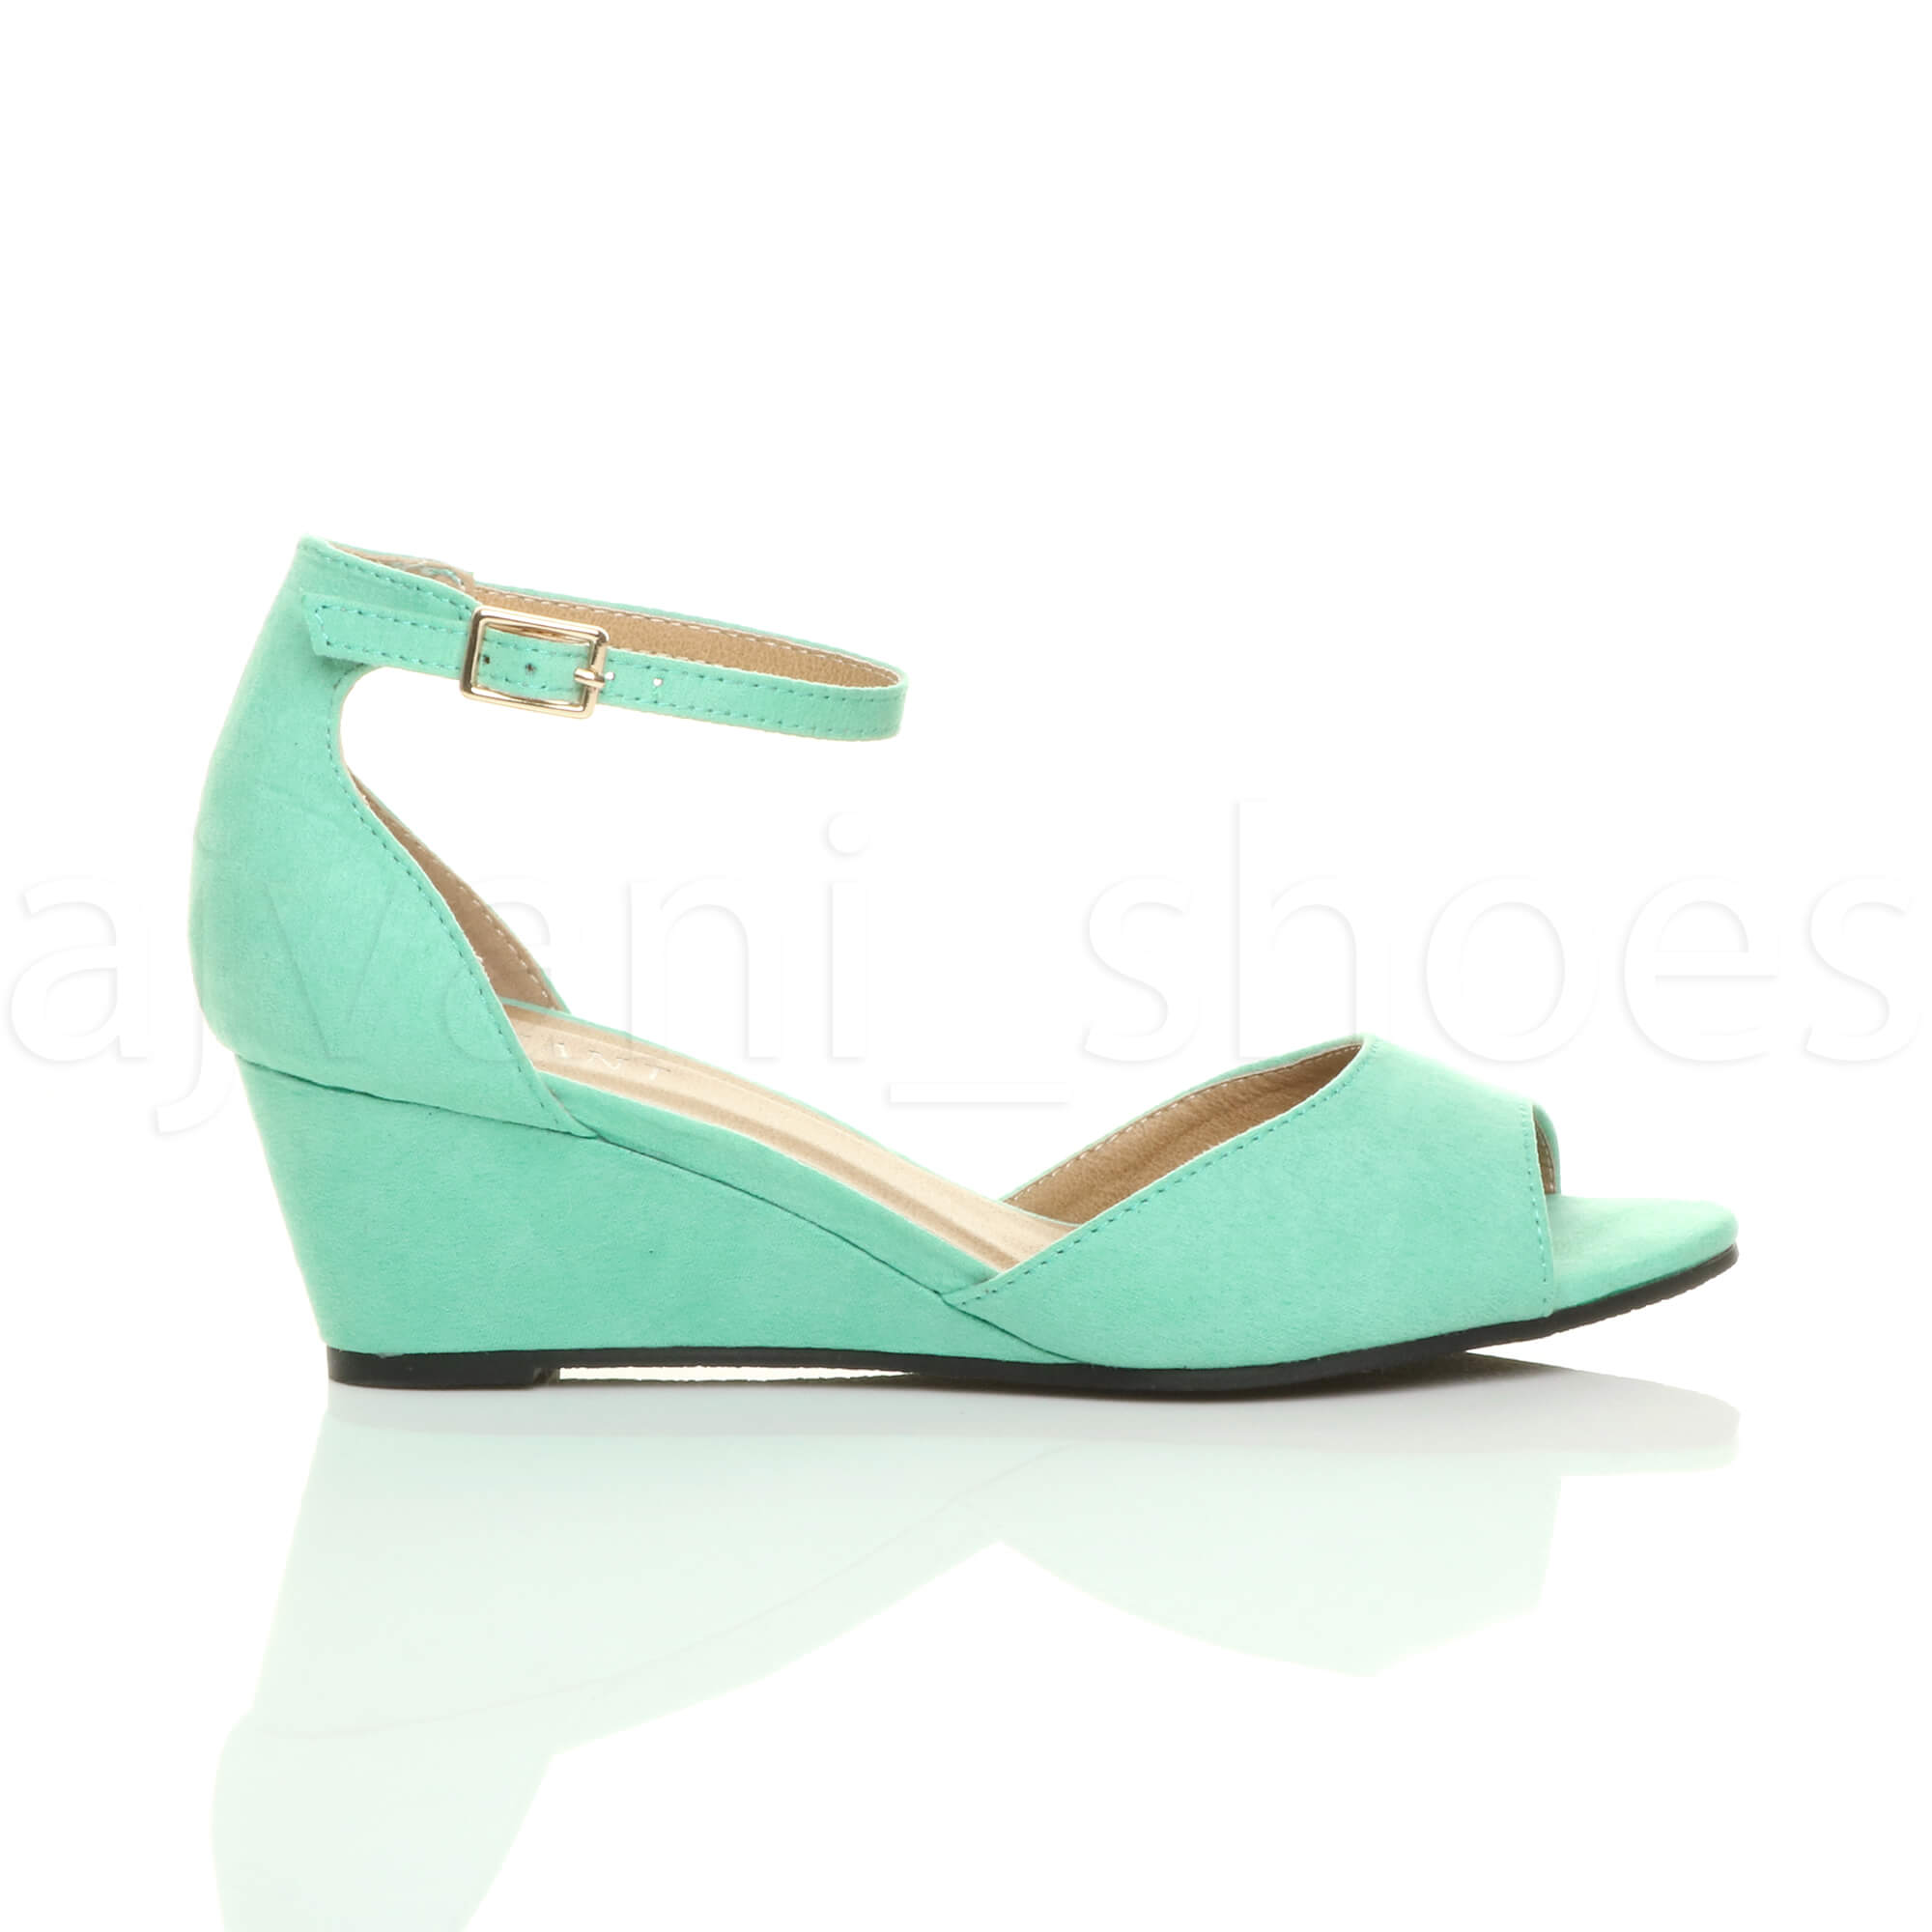 WOMENS-LADIES-LOW-MID-WEDGE-HEEL-ANKLE-STRAP-SMART-CASUAL-EVENING-SANDALS-SIZE thumbnail 75